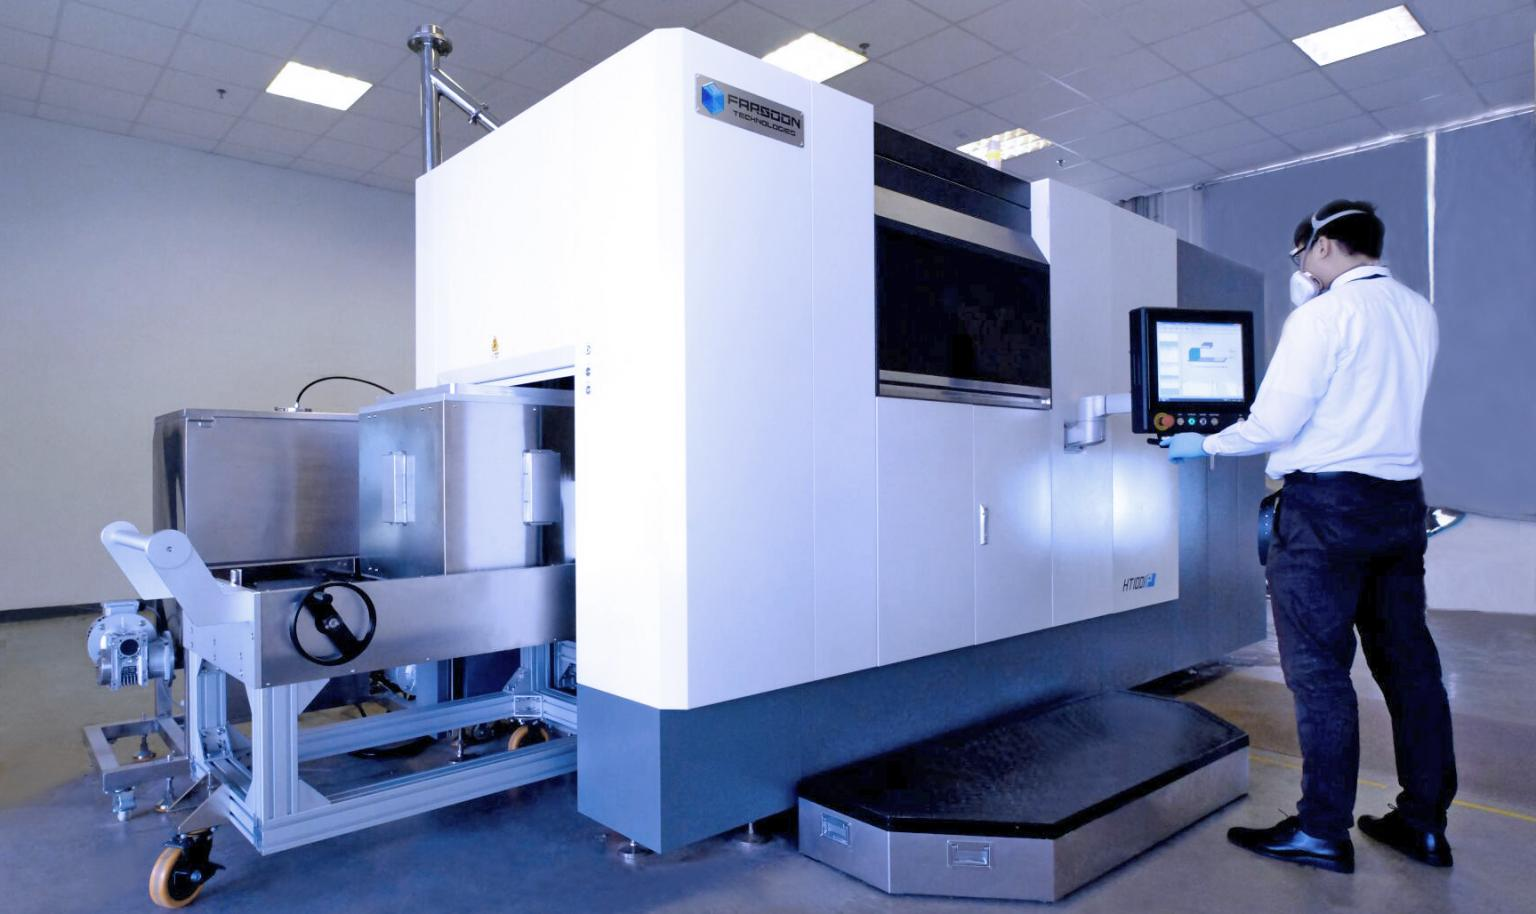 HT1001P with Continuoys Additive Manufacturing capacity. Operating at Farsoon headquarter in Changsha